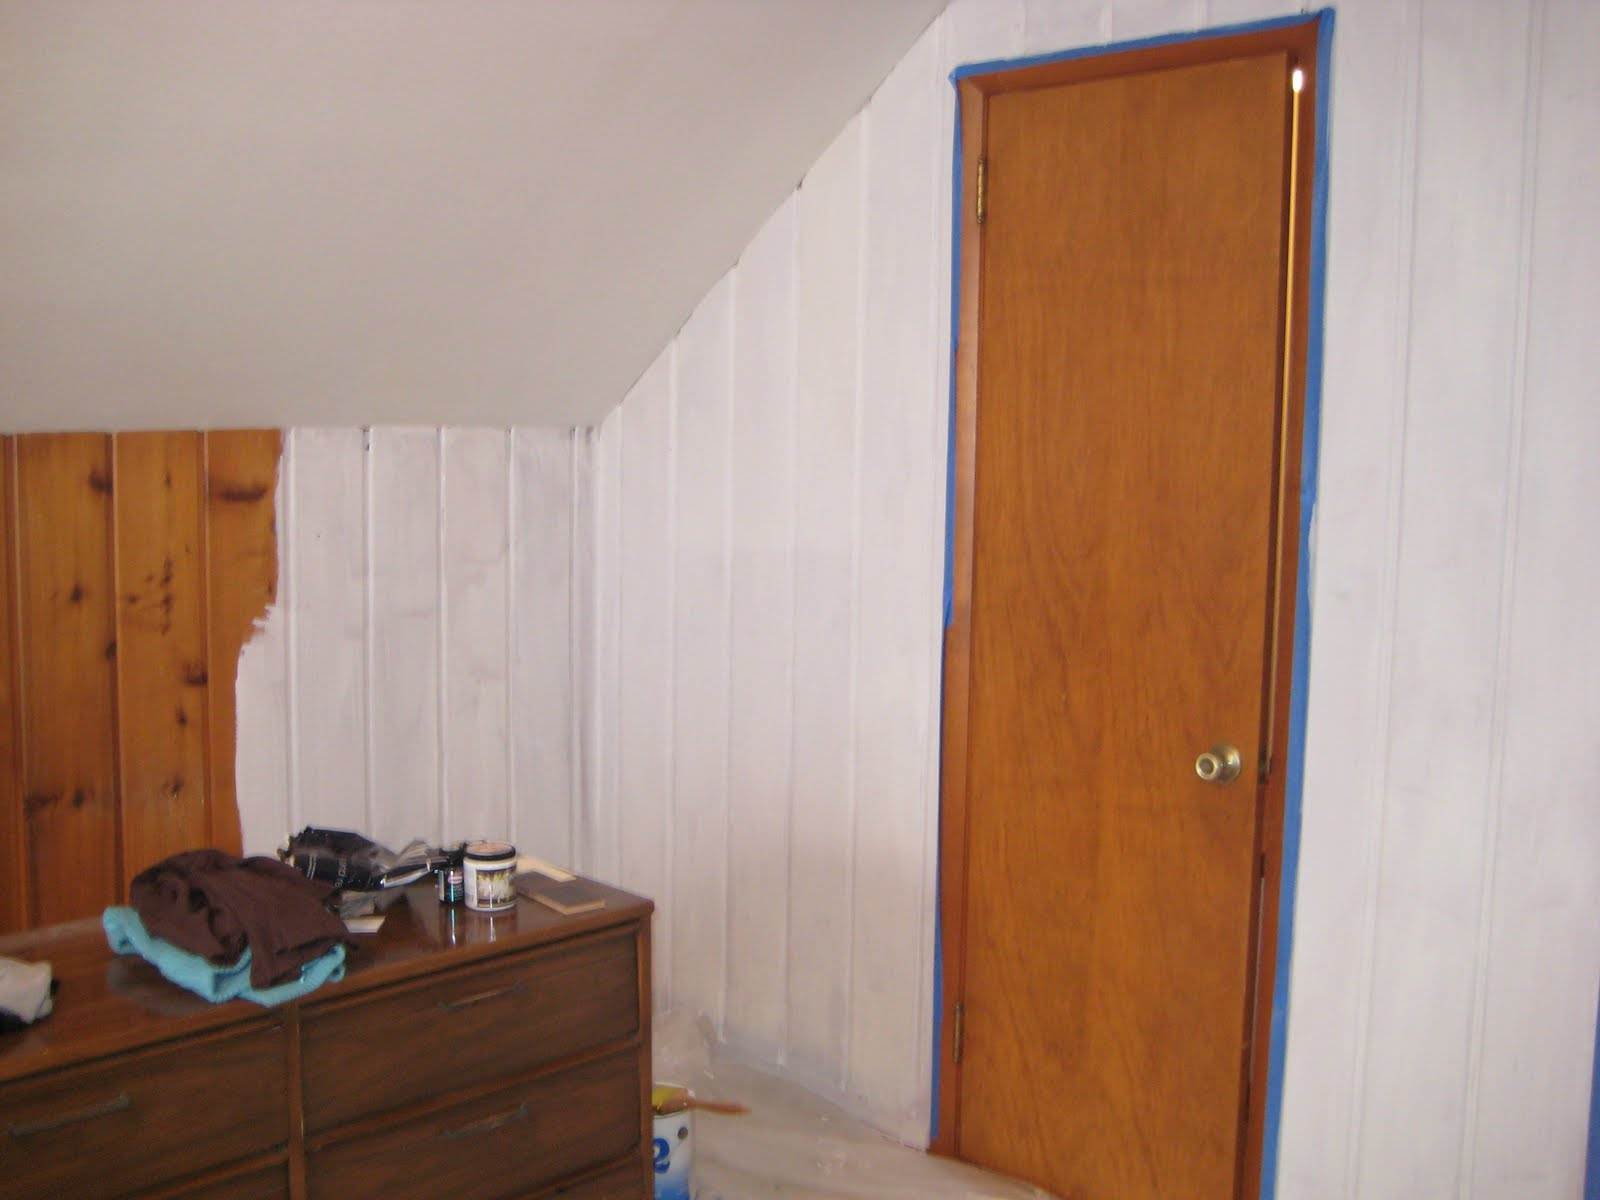 Bedroom Paneling Remodelaholic Painting Over Knotty Pine Paneling